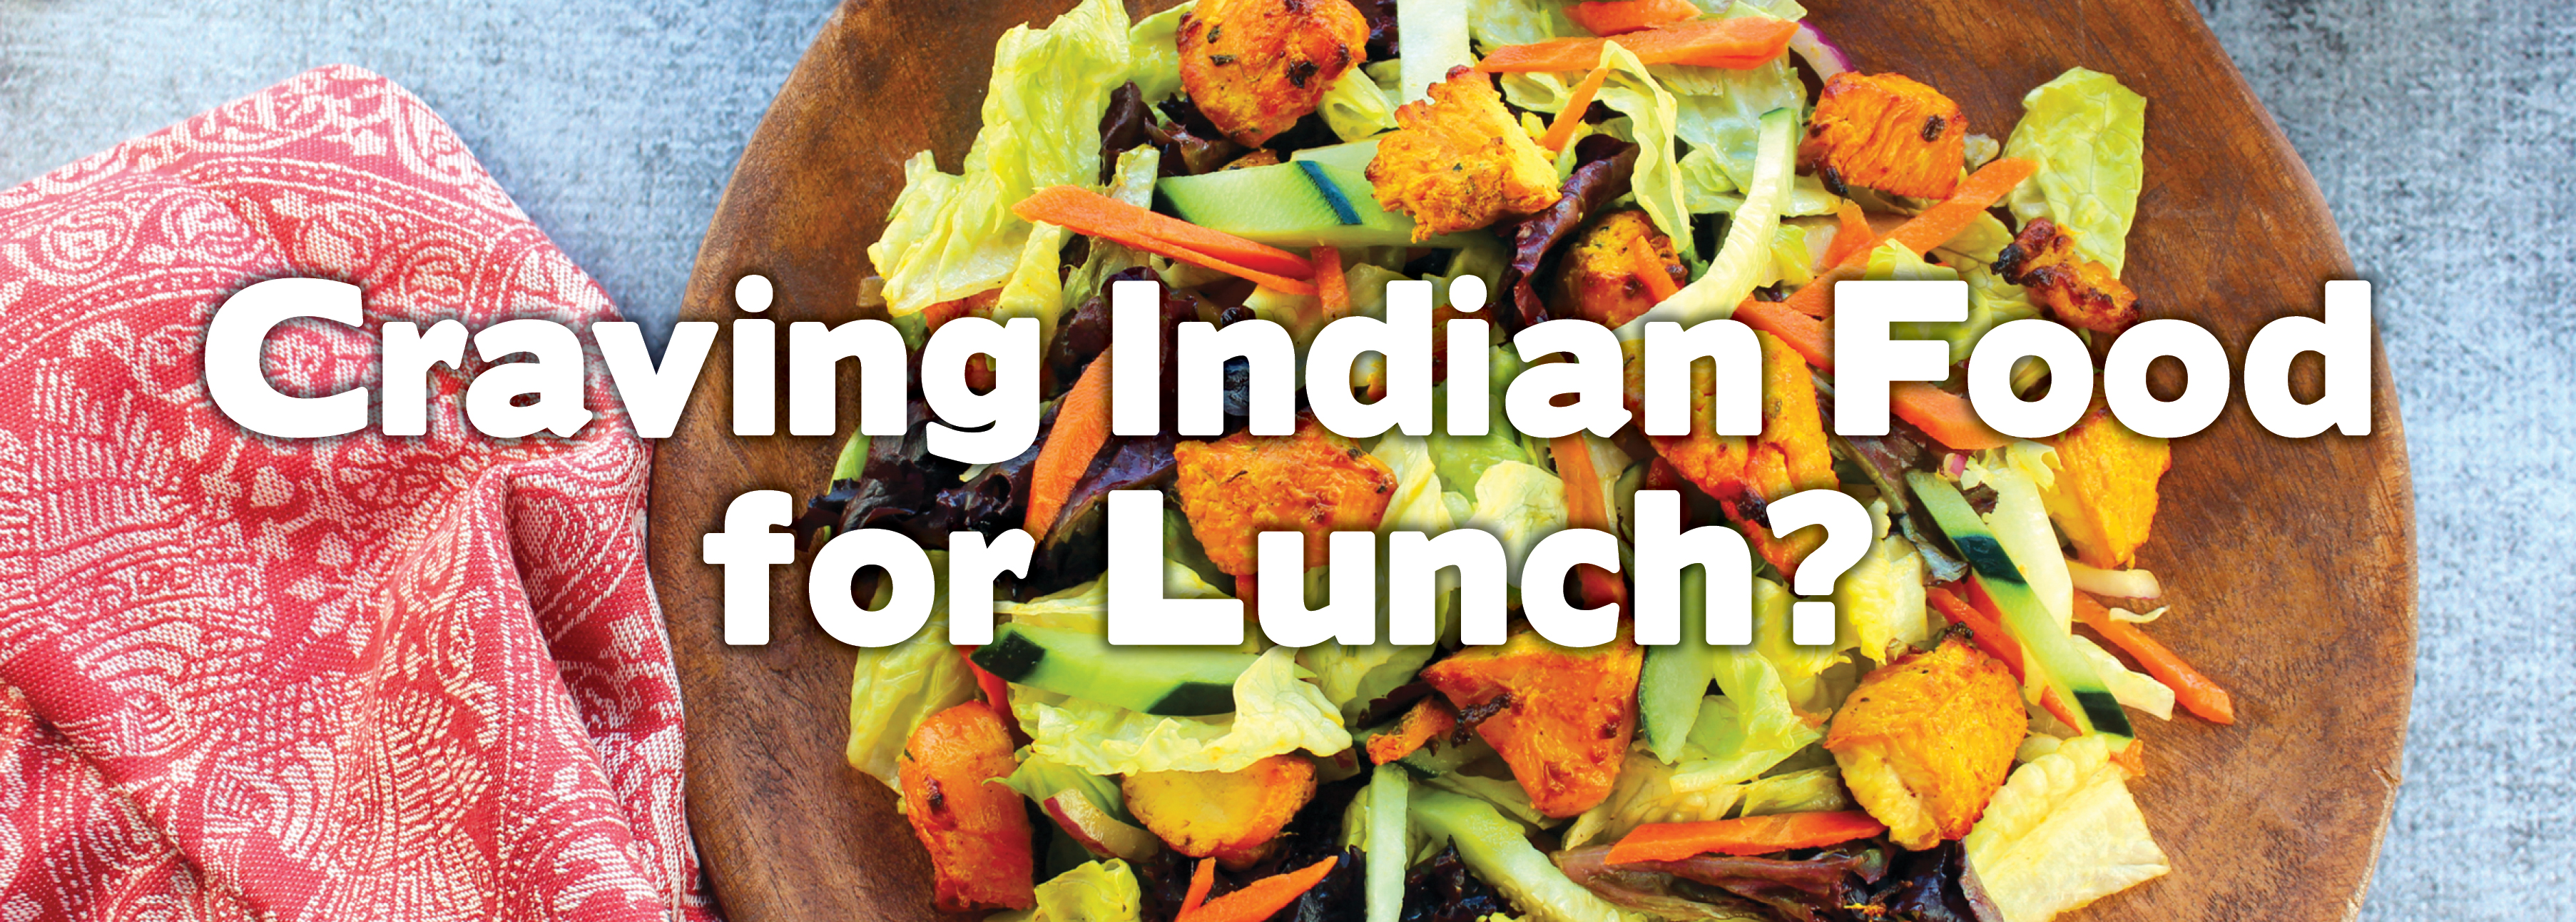 Indian Food at Masala Wok for Lunch